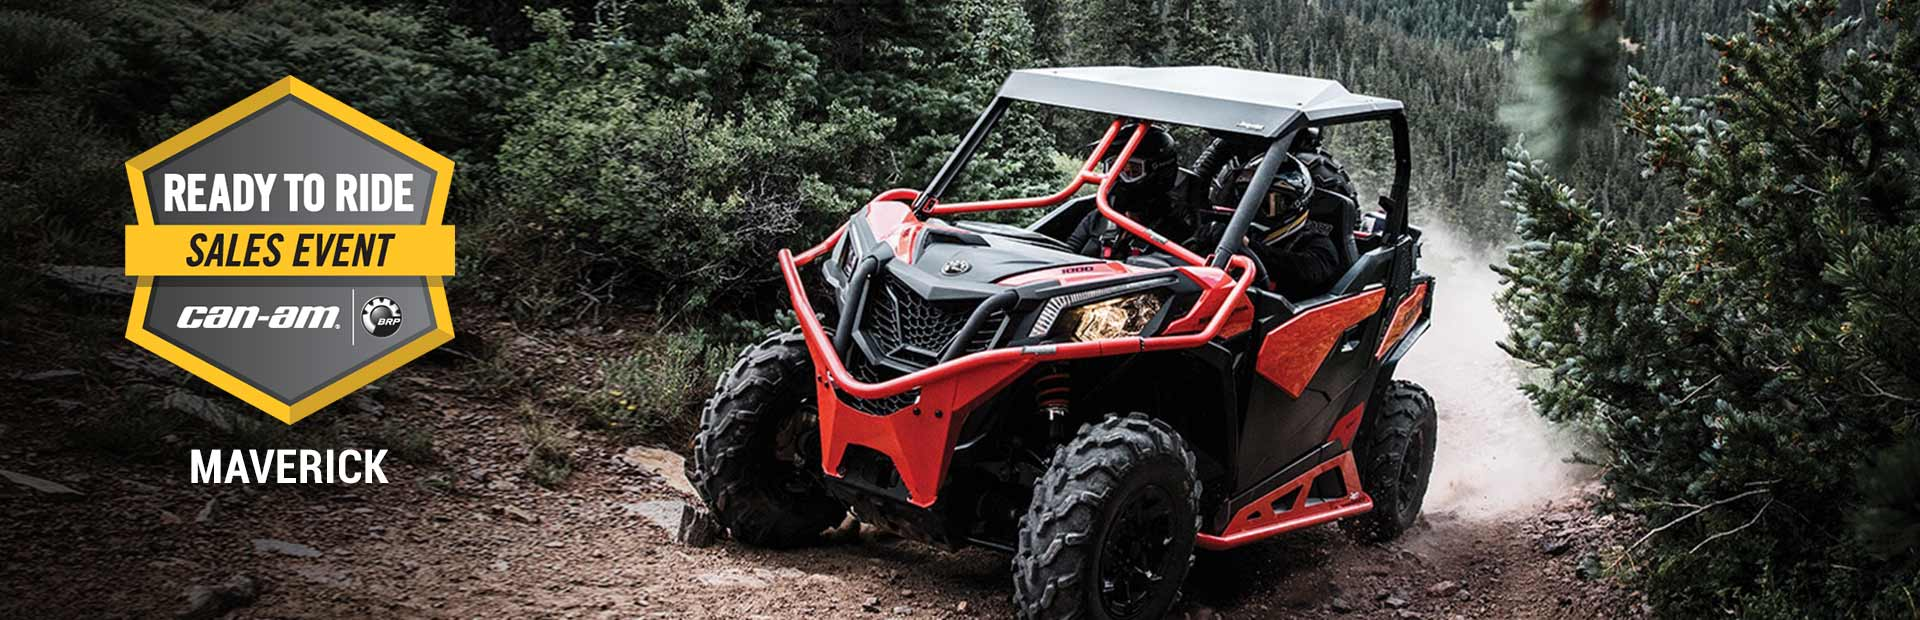 Can-Am: Ready to Ride Sales Event - MAVERICK